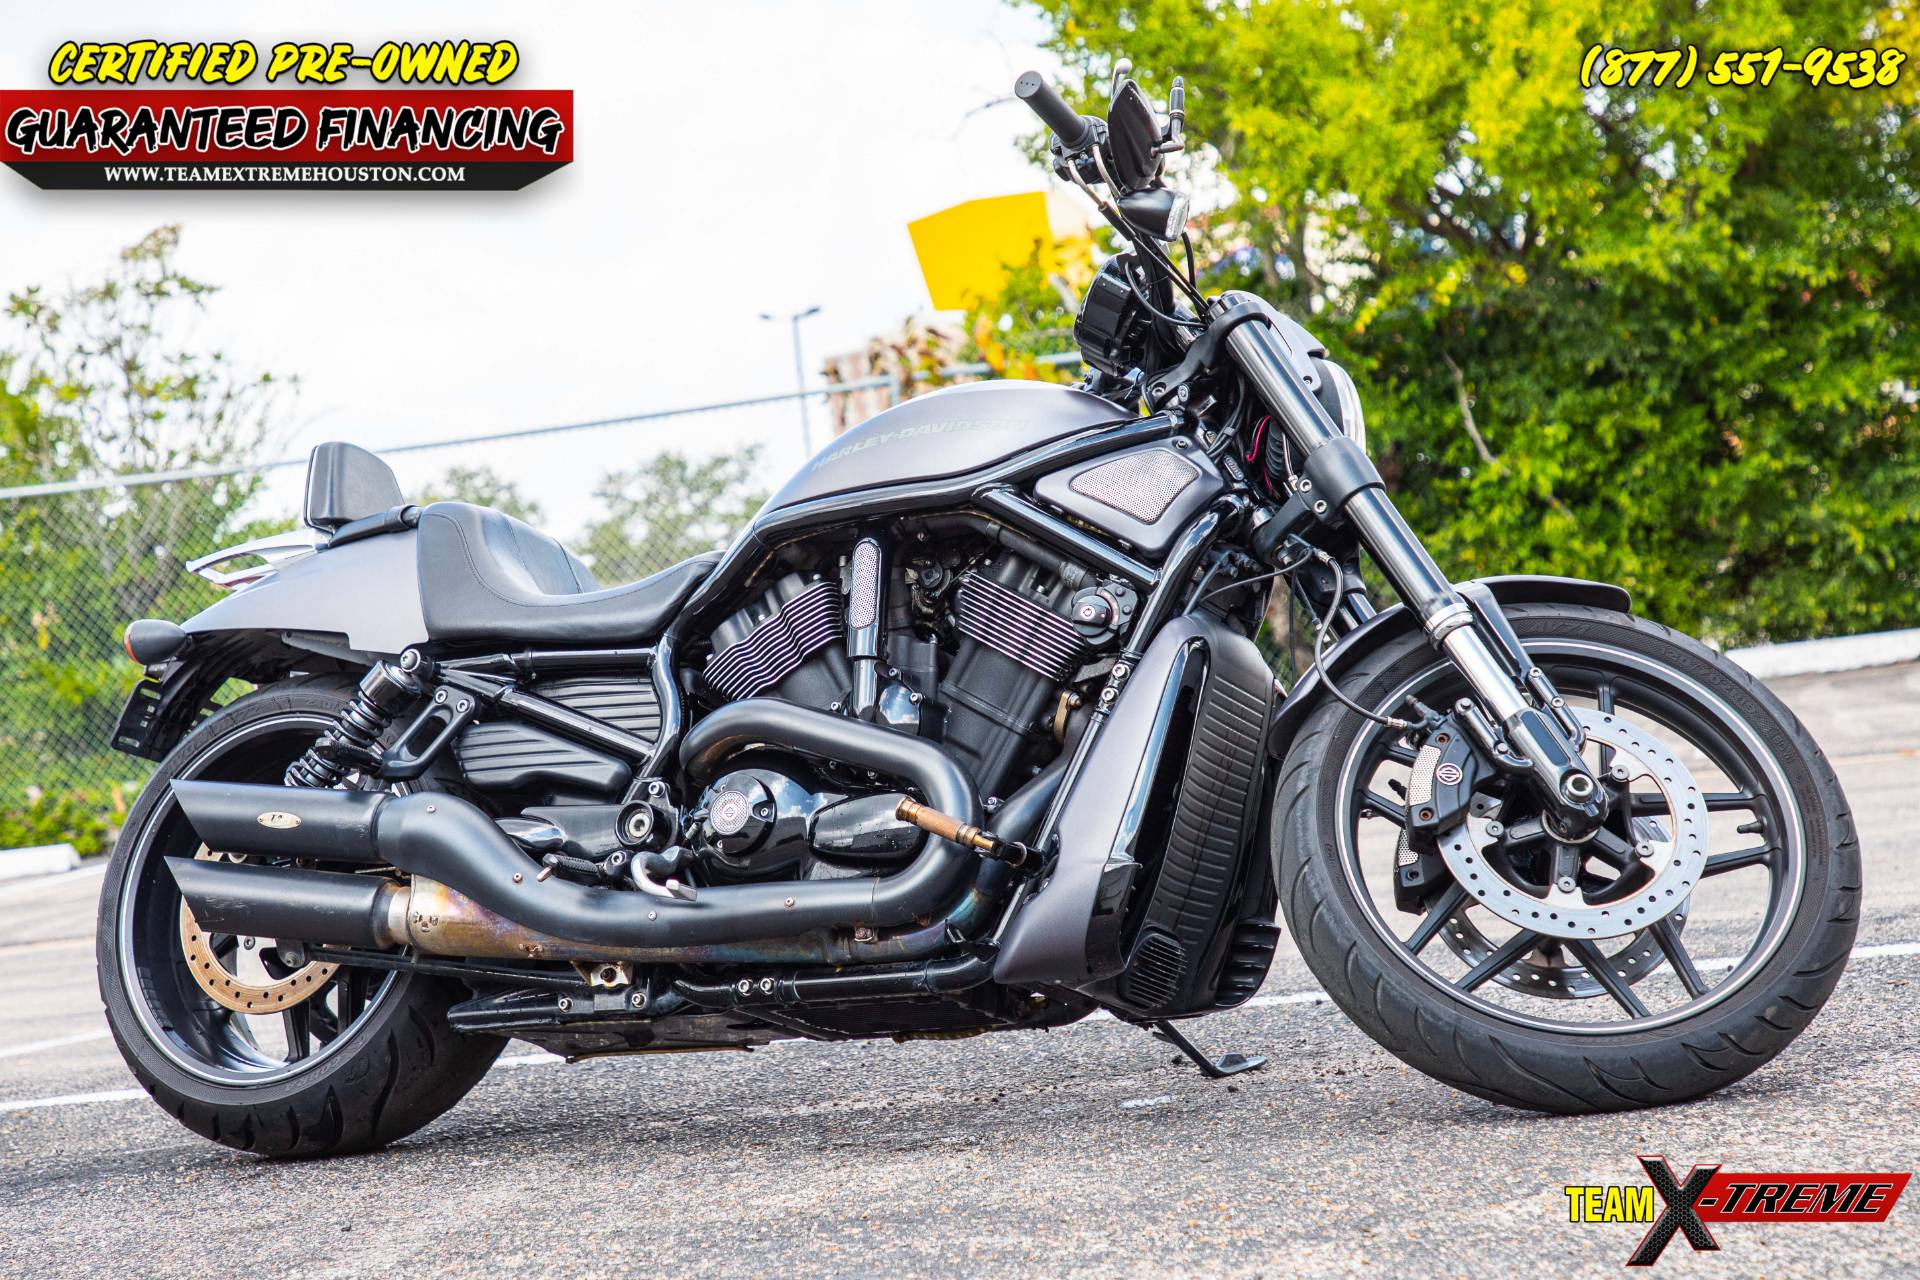 Used 2016 Harley Davidson Night Rod Special Motorcycles In Houston Tx Stock Number 150j801853